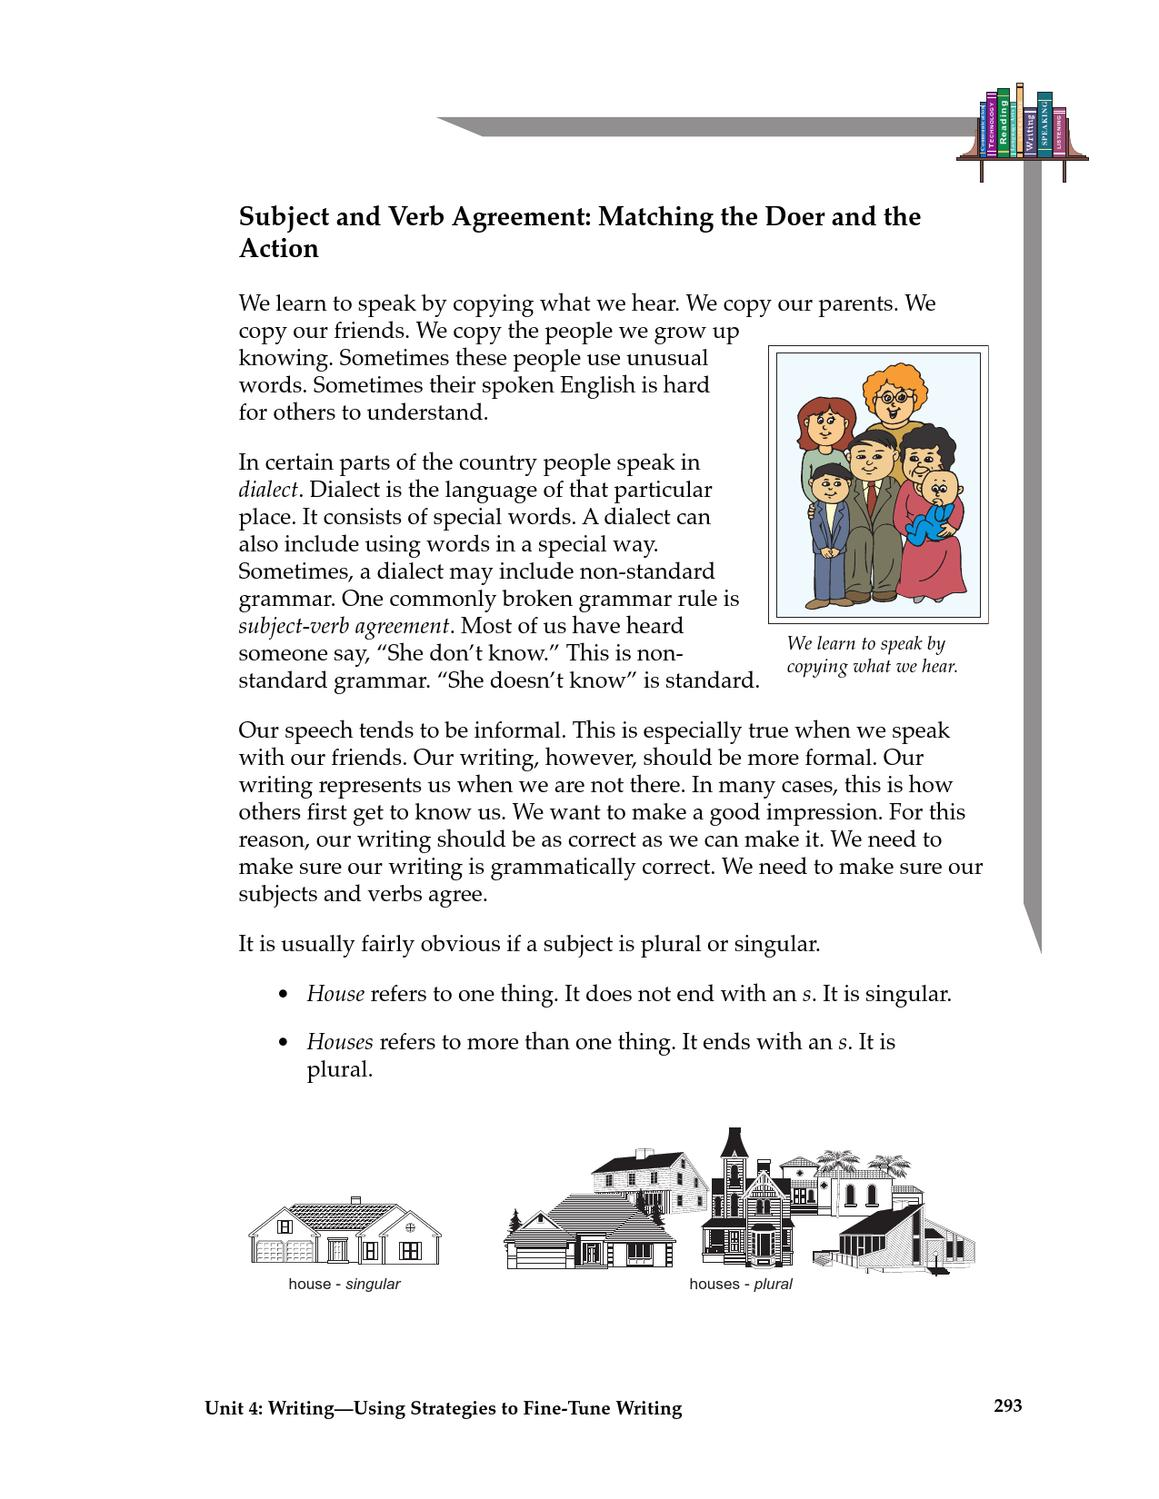 hight resolution of Subject-Verb-Agreement-Handout-and-Exercises by Lauren Mason - issuu